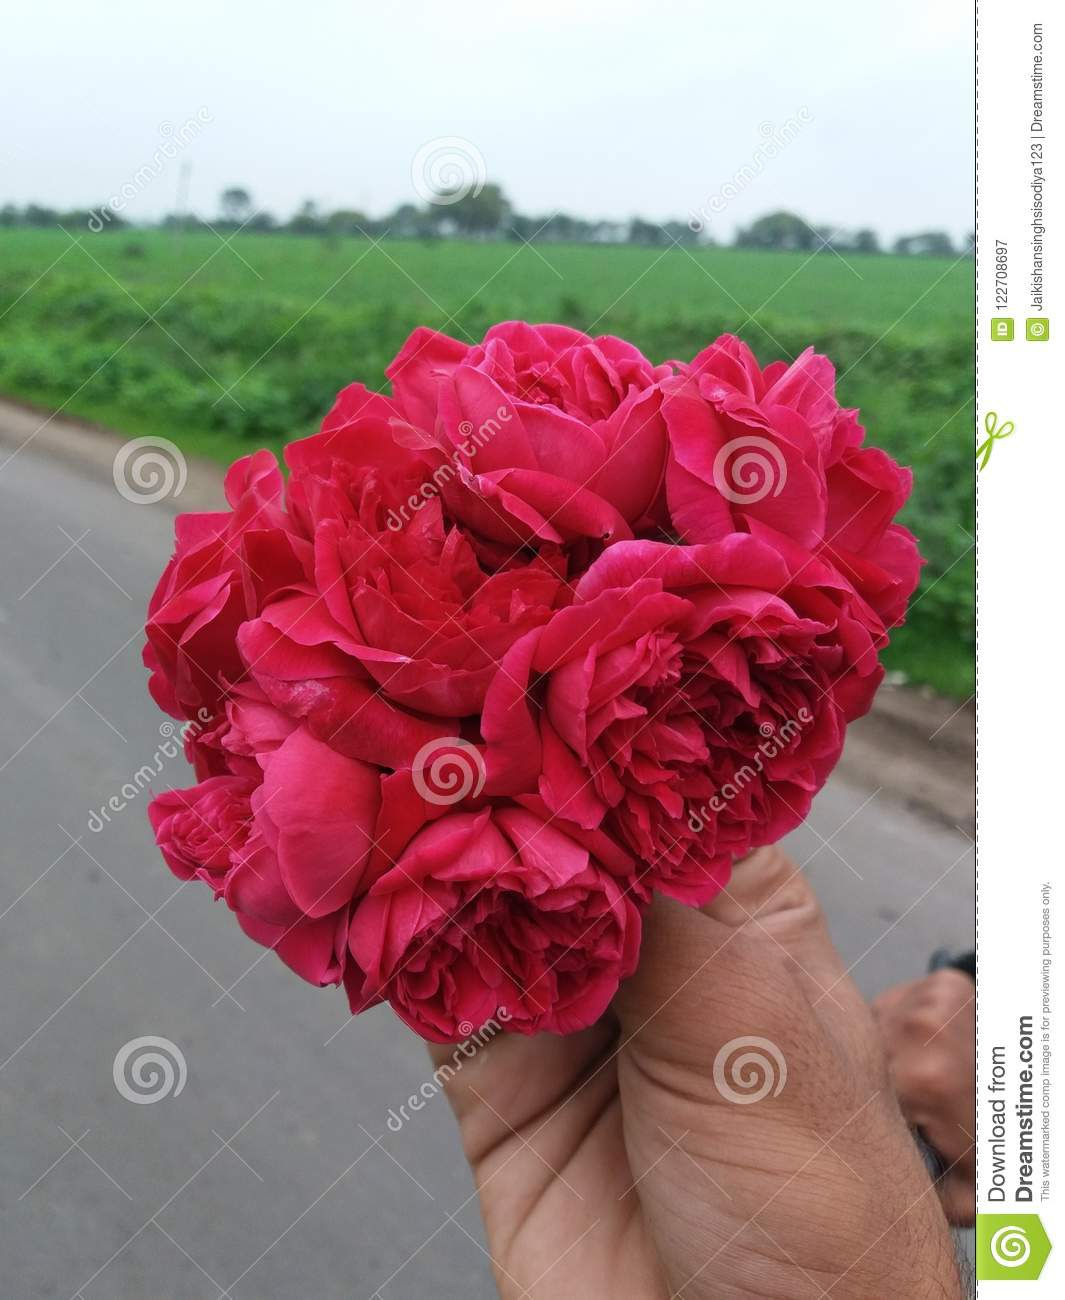 Red Roses With Natural Beauty Stock Image , Image of nature